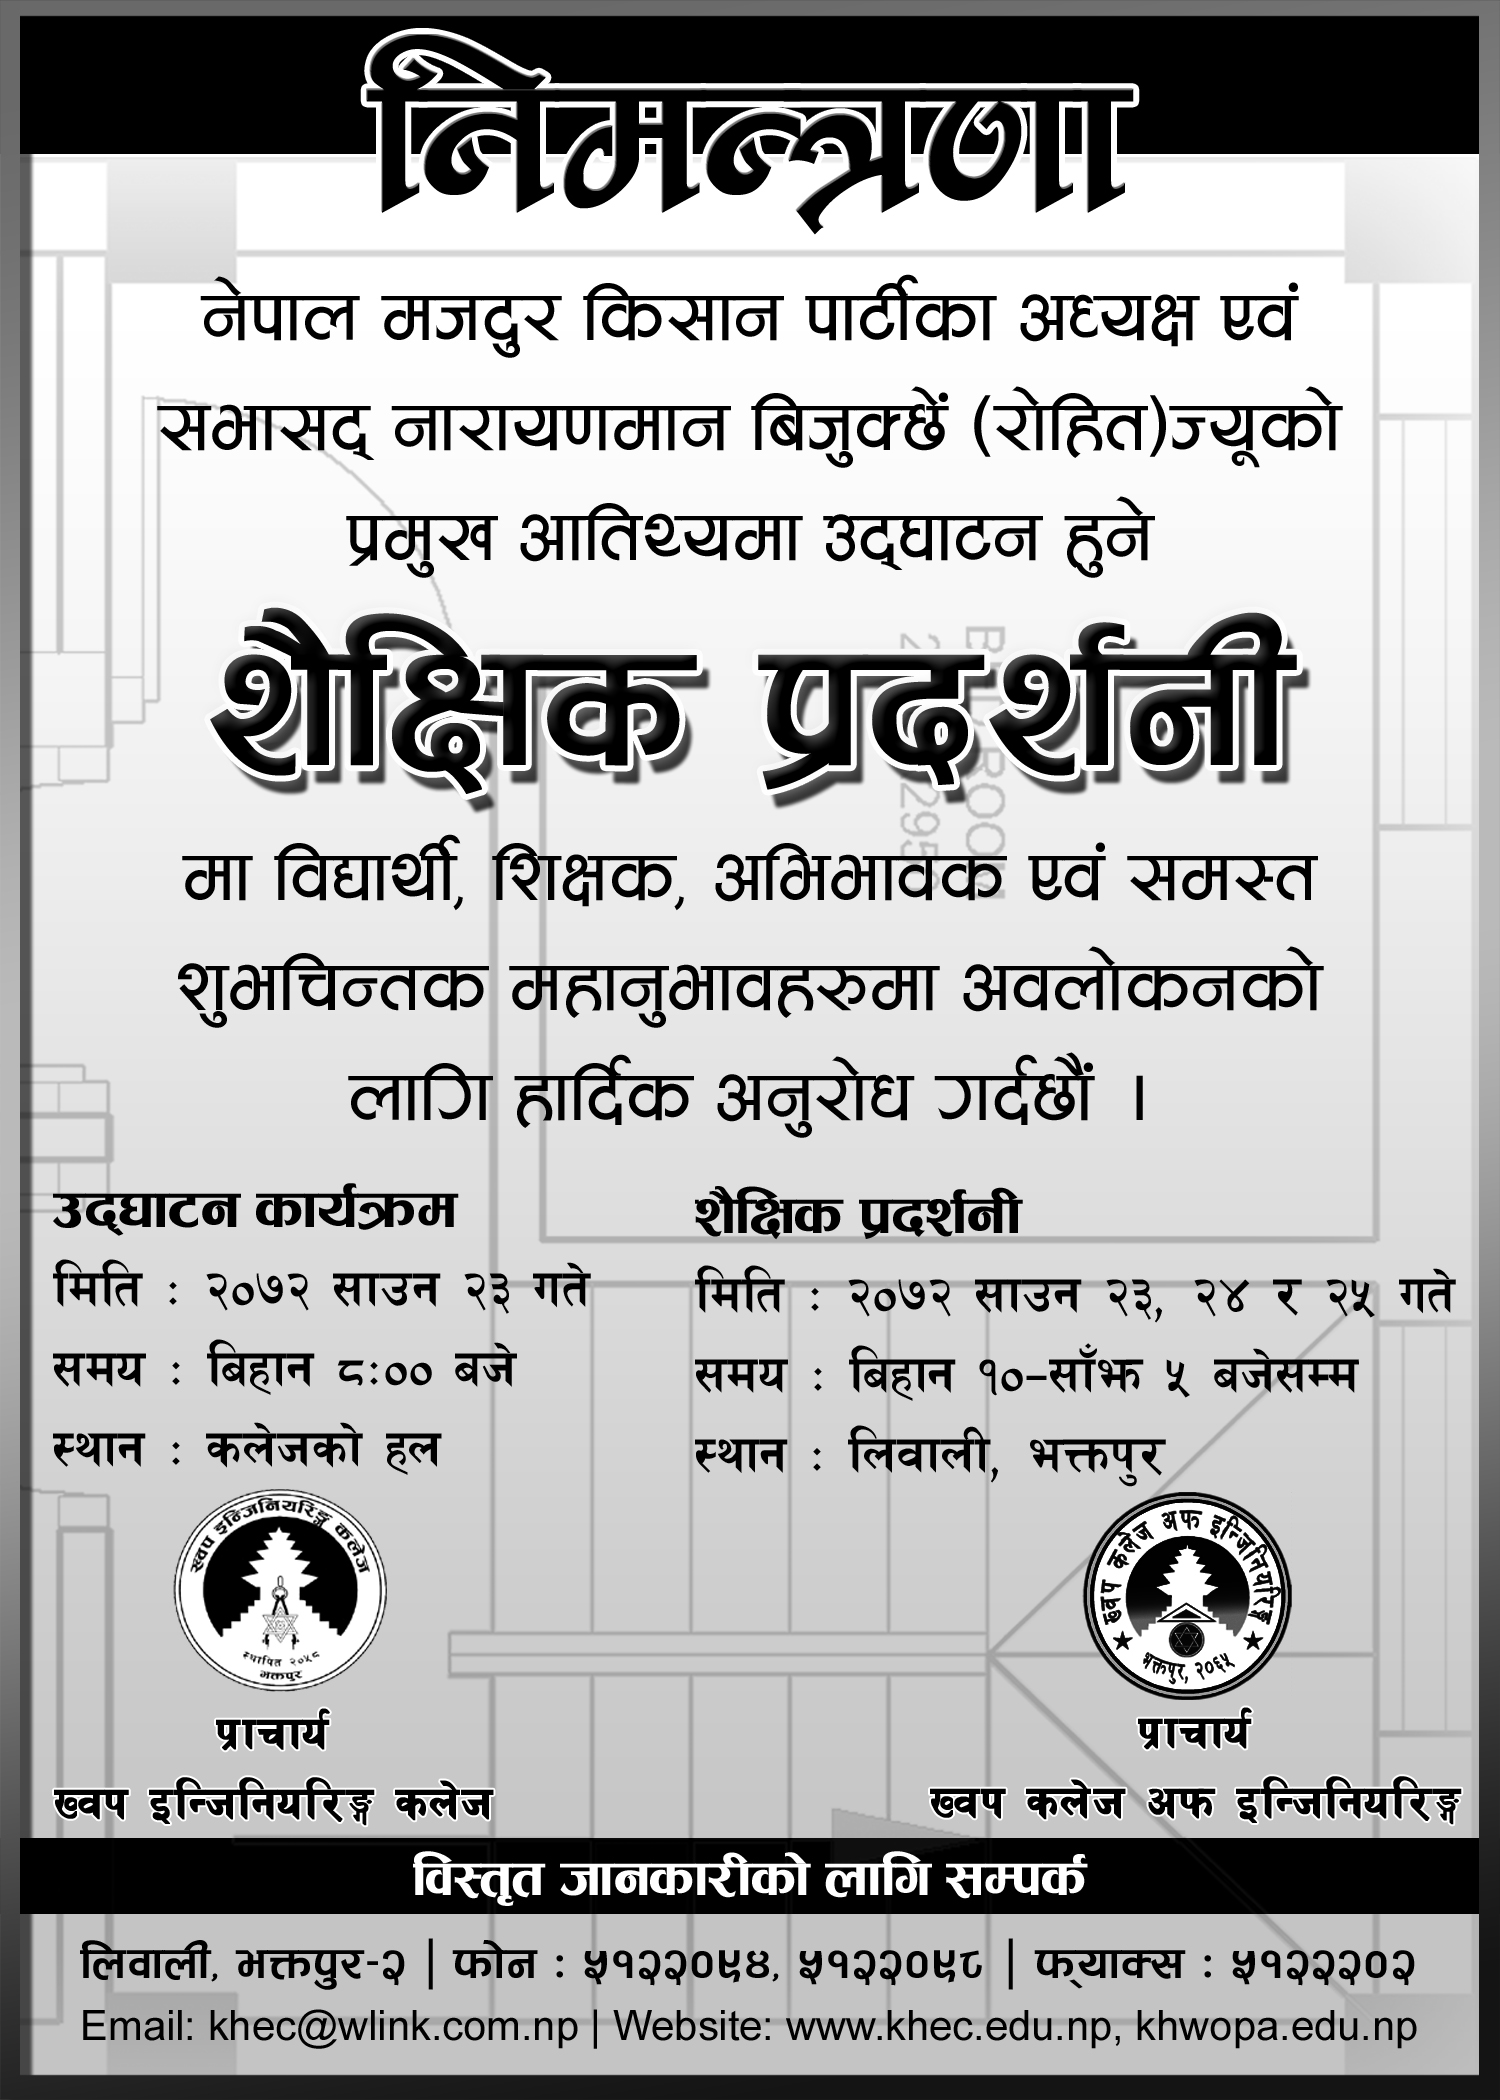 Educational Exhibition- 2072 on Shrawan 23, 24 and 25.